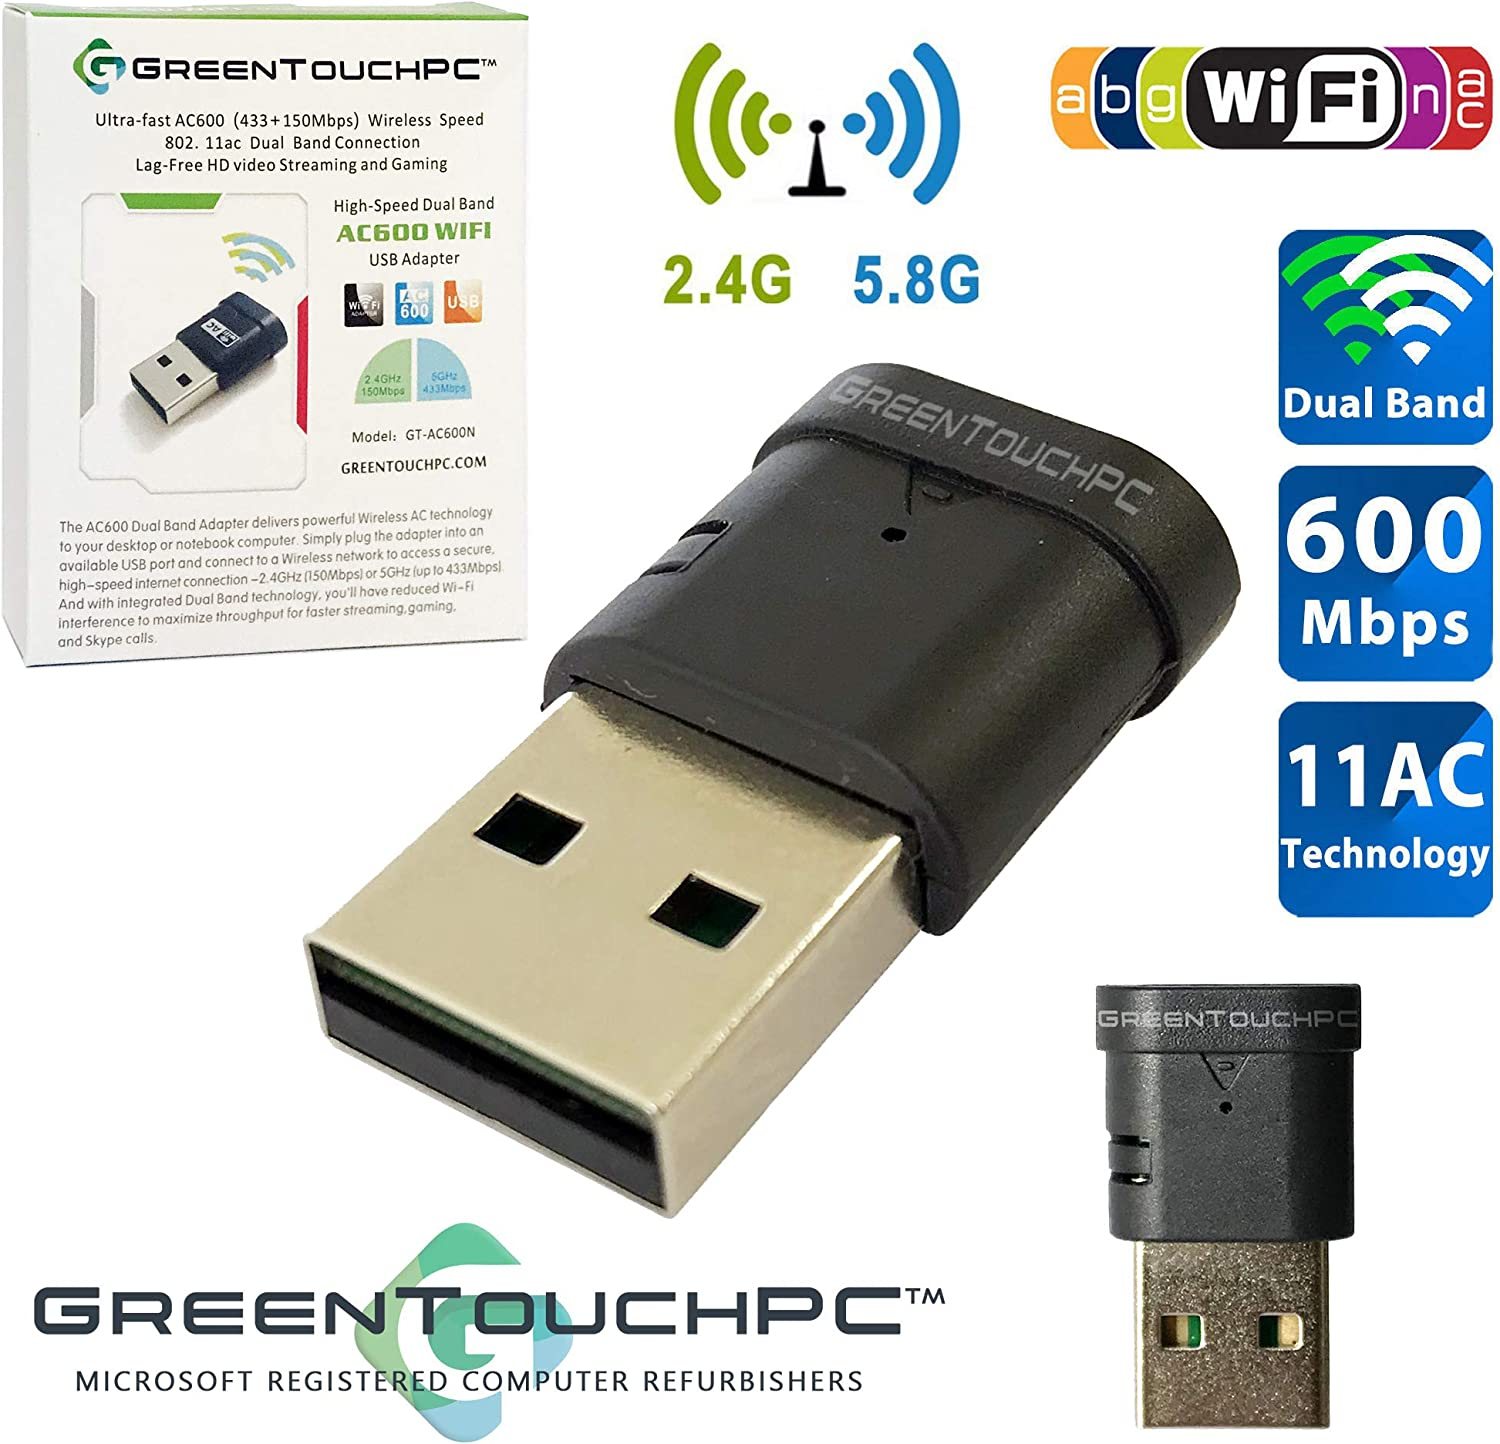 GREENTOUCHPC AC600 802.11ac HighSpeed DualBand USB WiFi Adapter 2.4GHz/5GHz 600Mbps Wireless Network Nano Dongle for Desktop Computer PC Laptop (Compatible Windows XP/7/8/10/Vista, MacOS 10.9 and up)